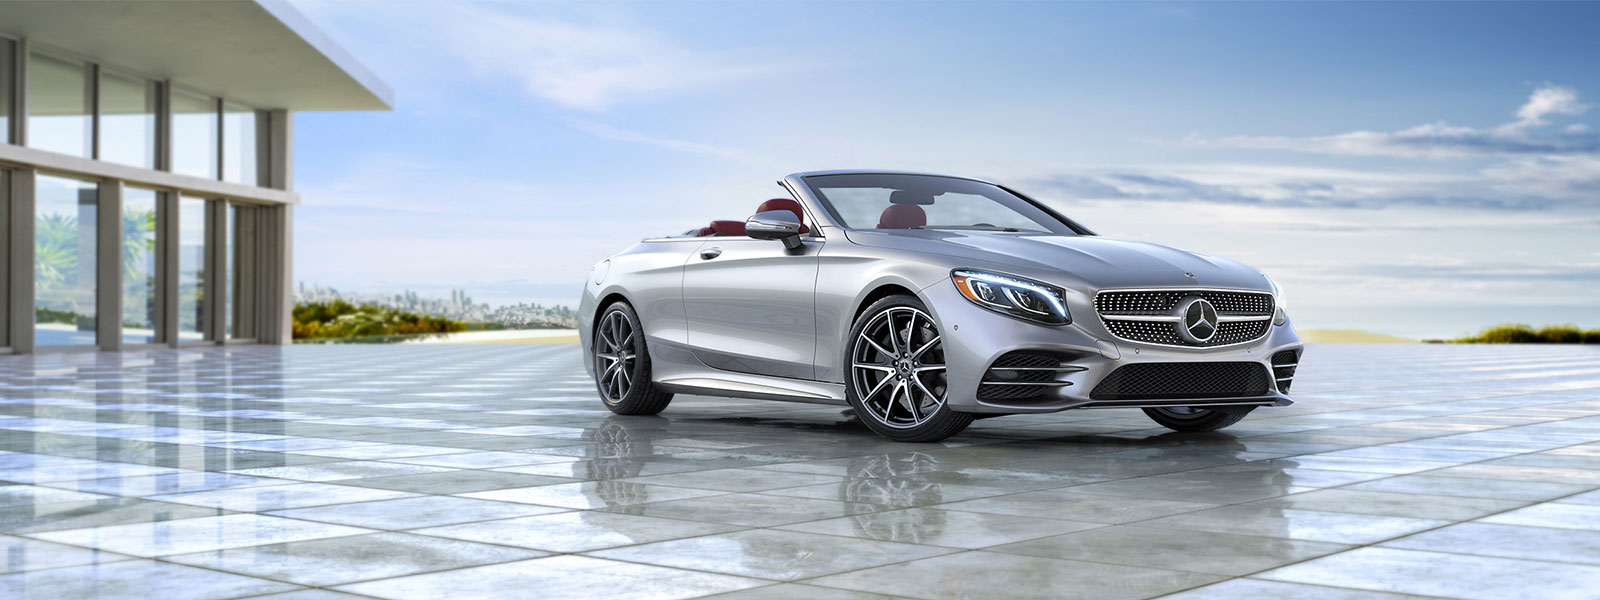 for stock used convertible mercedes l benz sl class albany sale c ny htm near